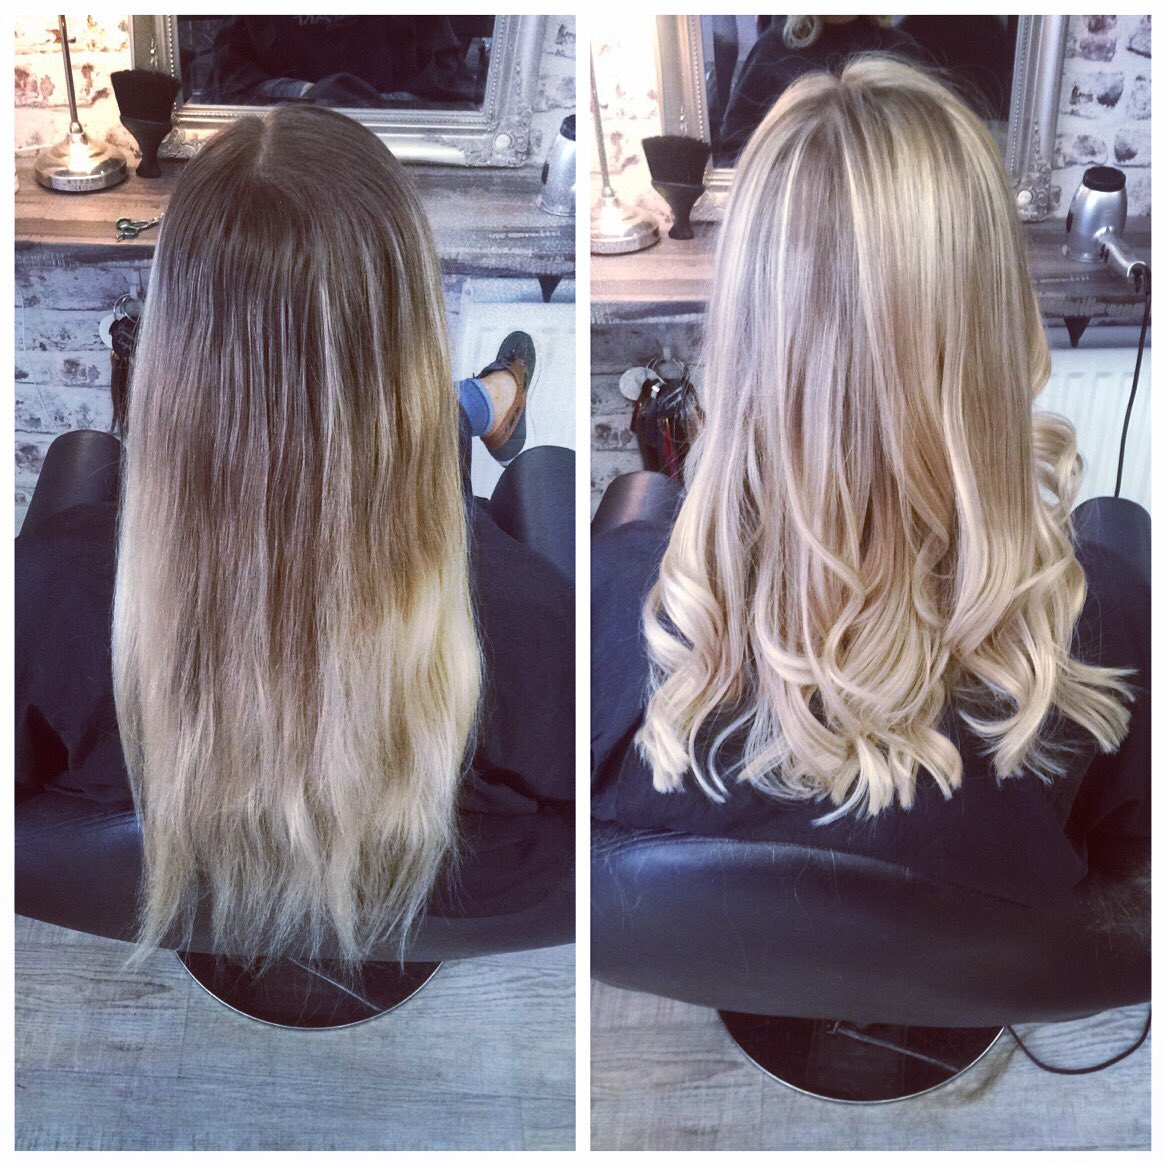 Laura Mcnaul On Twitter Before And After A Full Head Of Highlights